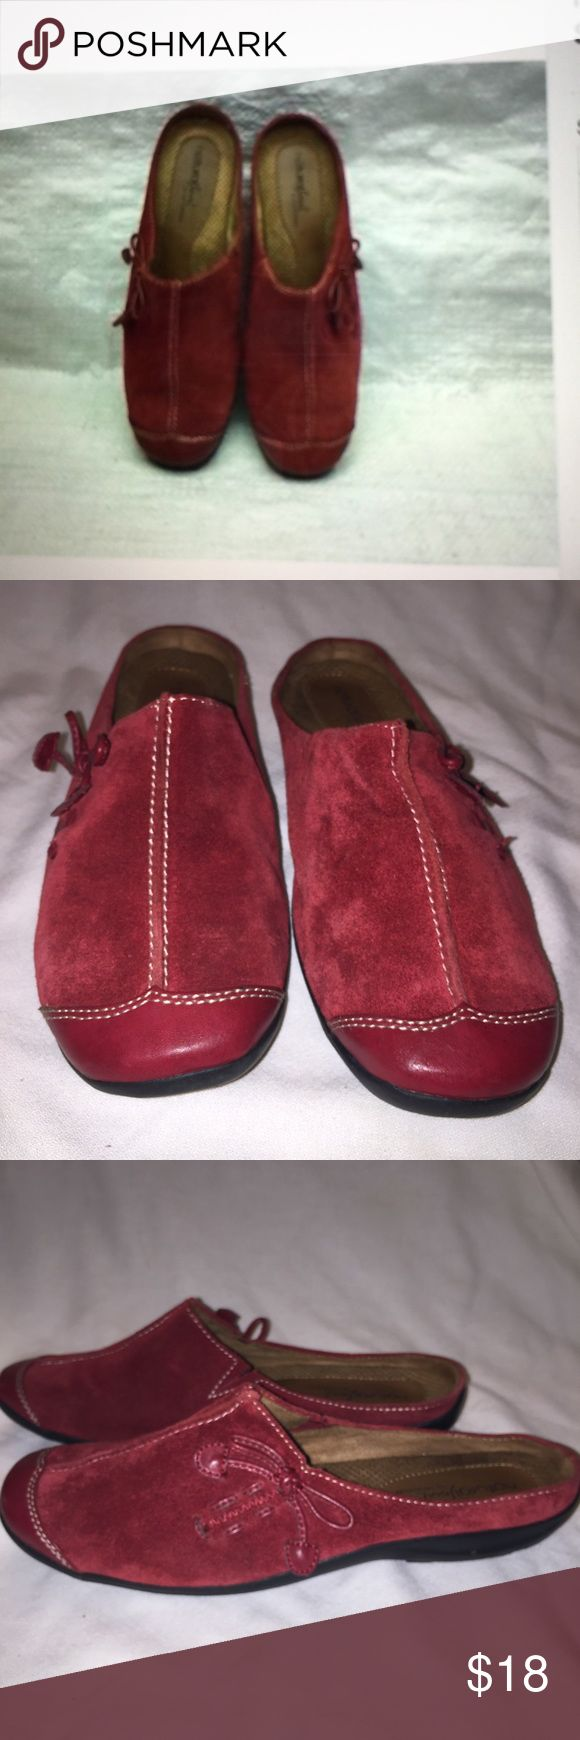 1000 Ideas About Mules Amp Clogs On Pinterest Icra Rating